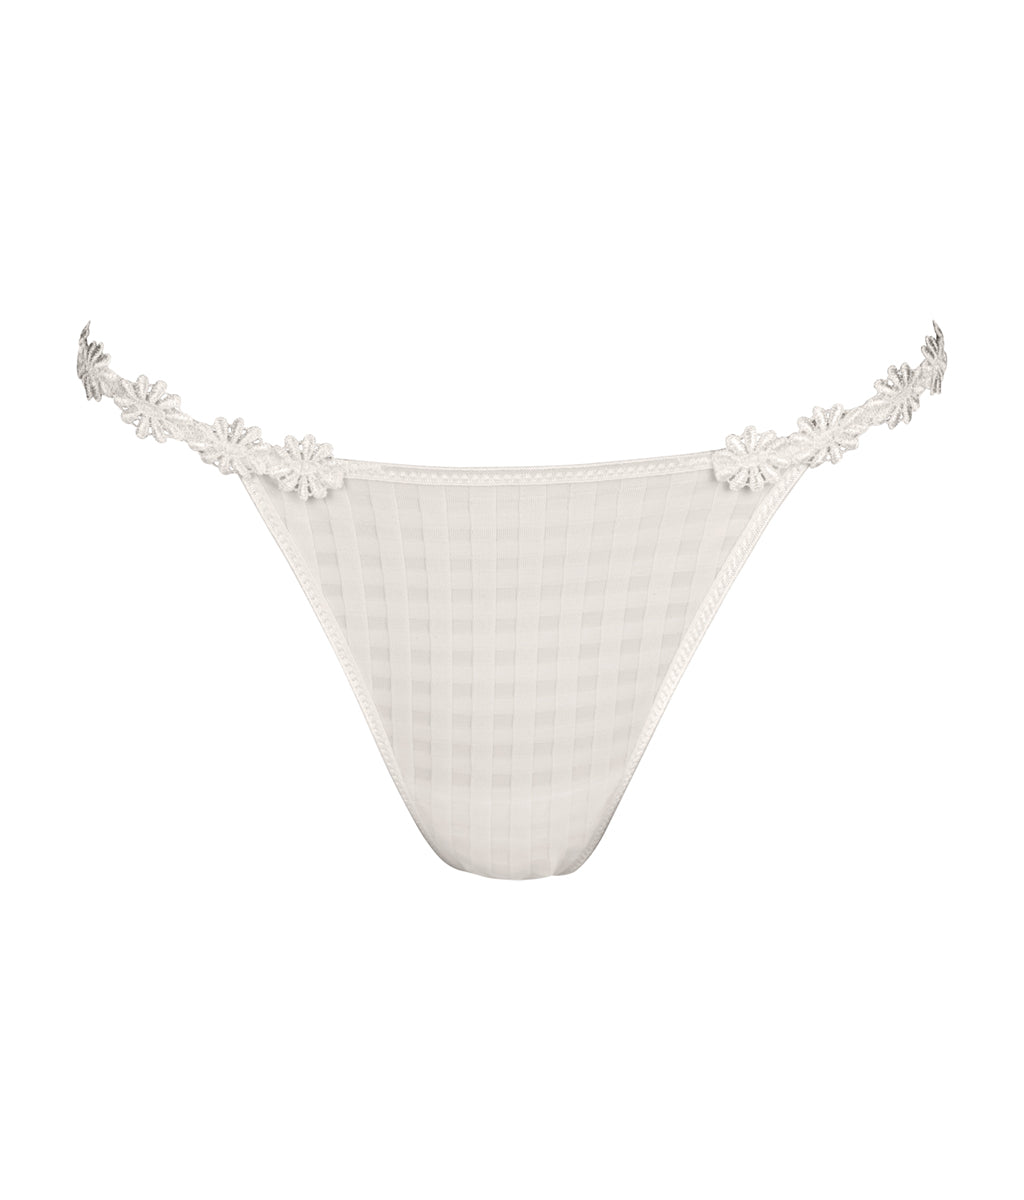 Marie Jo 'Avero' (Natural) G String - Sandra Dee - Product Shot - Front